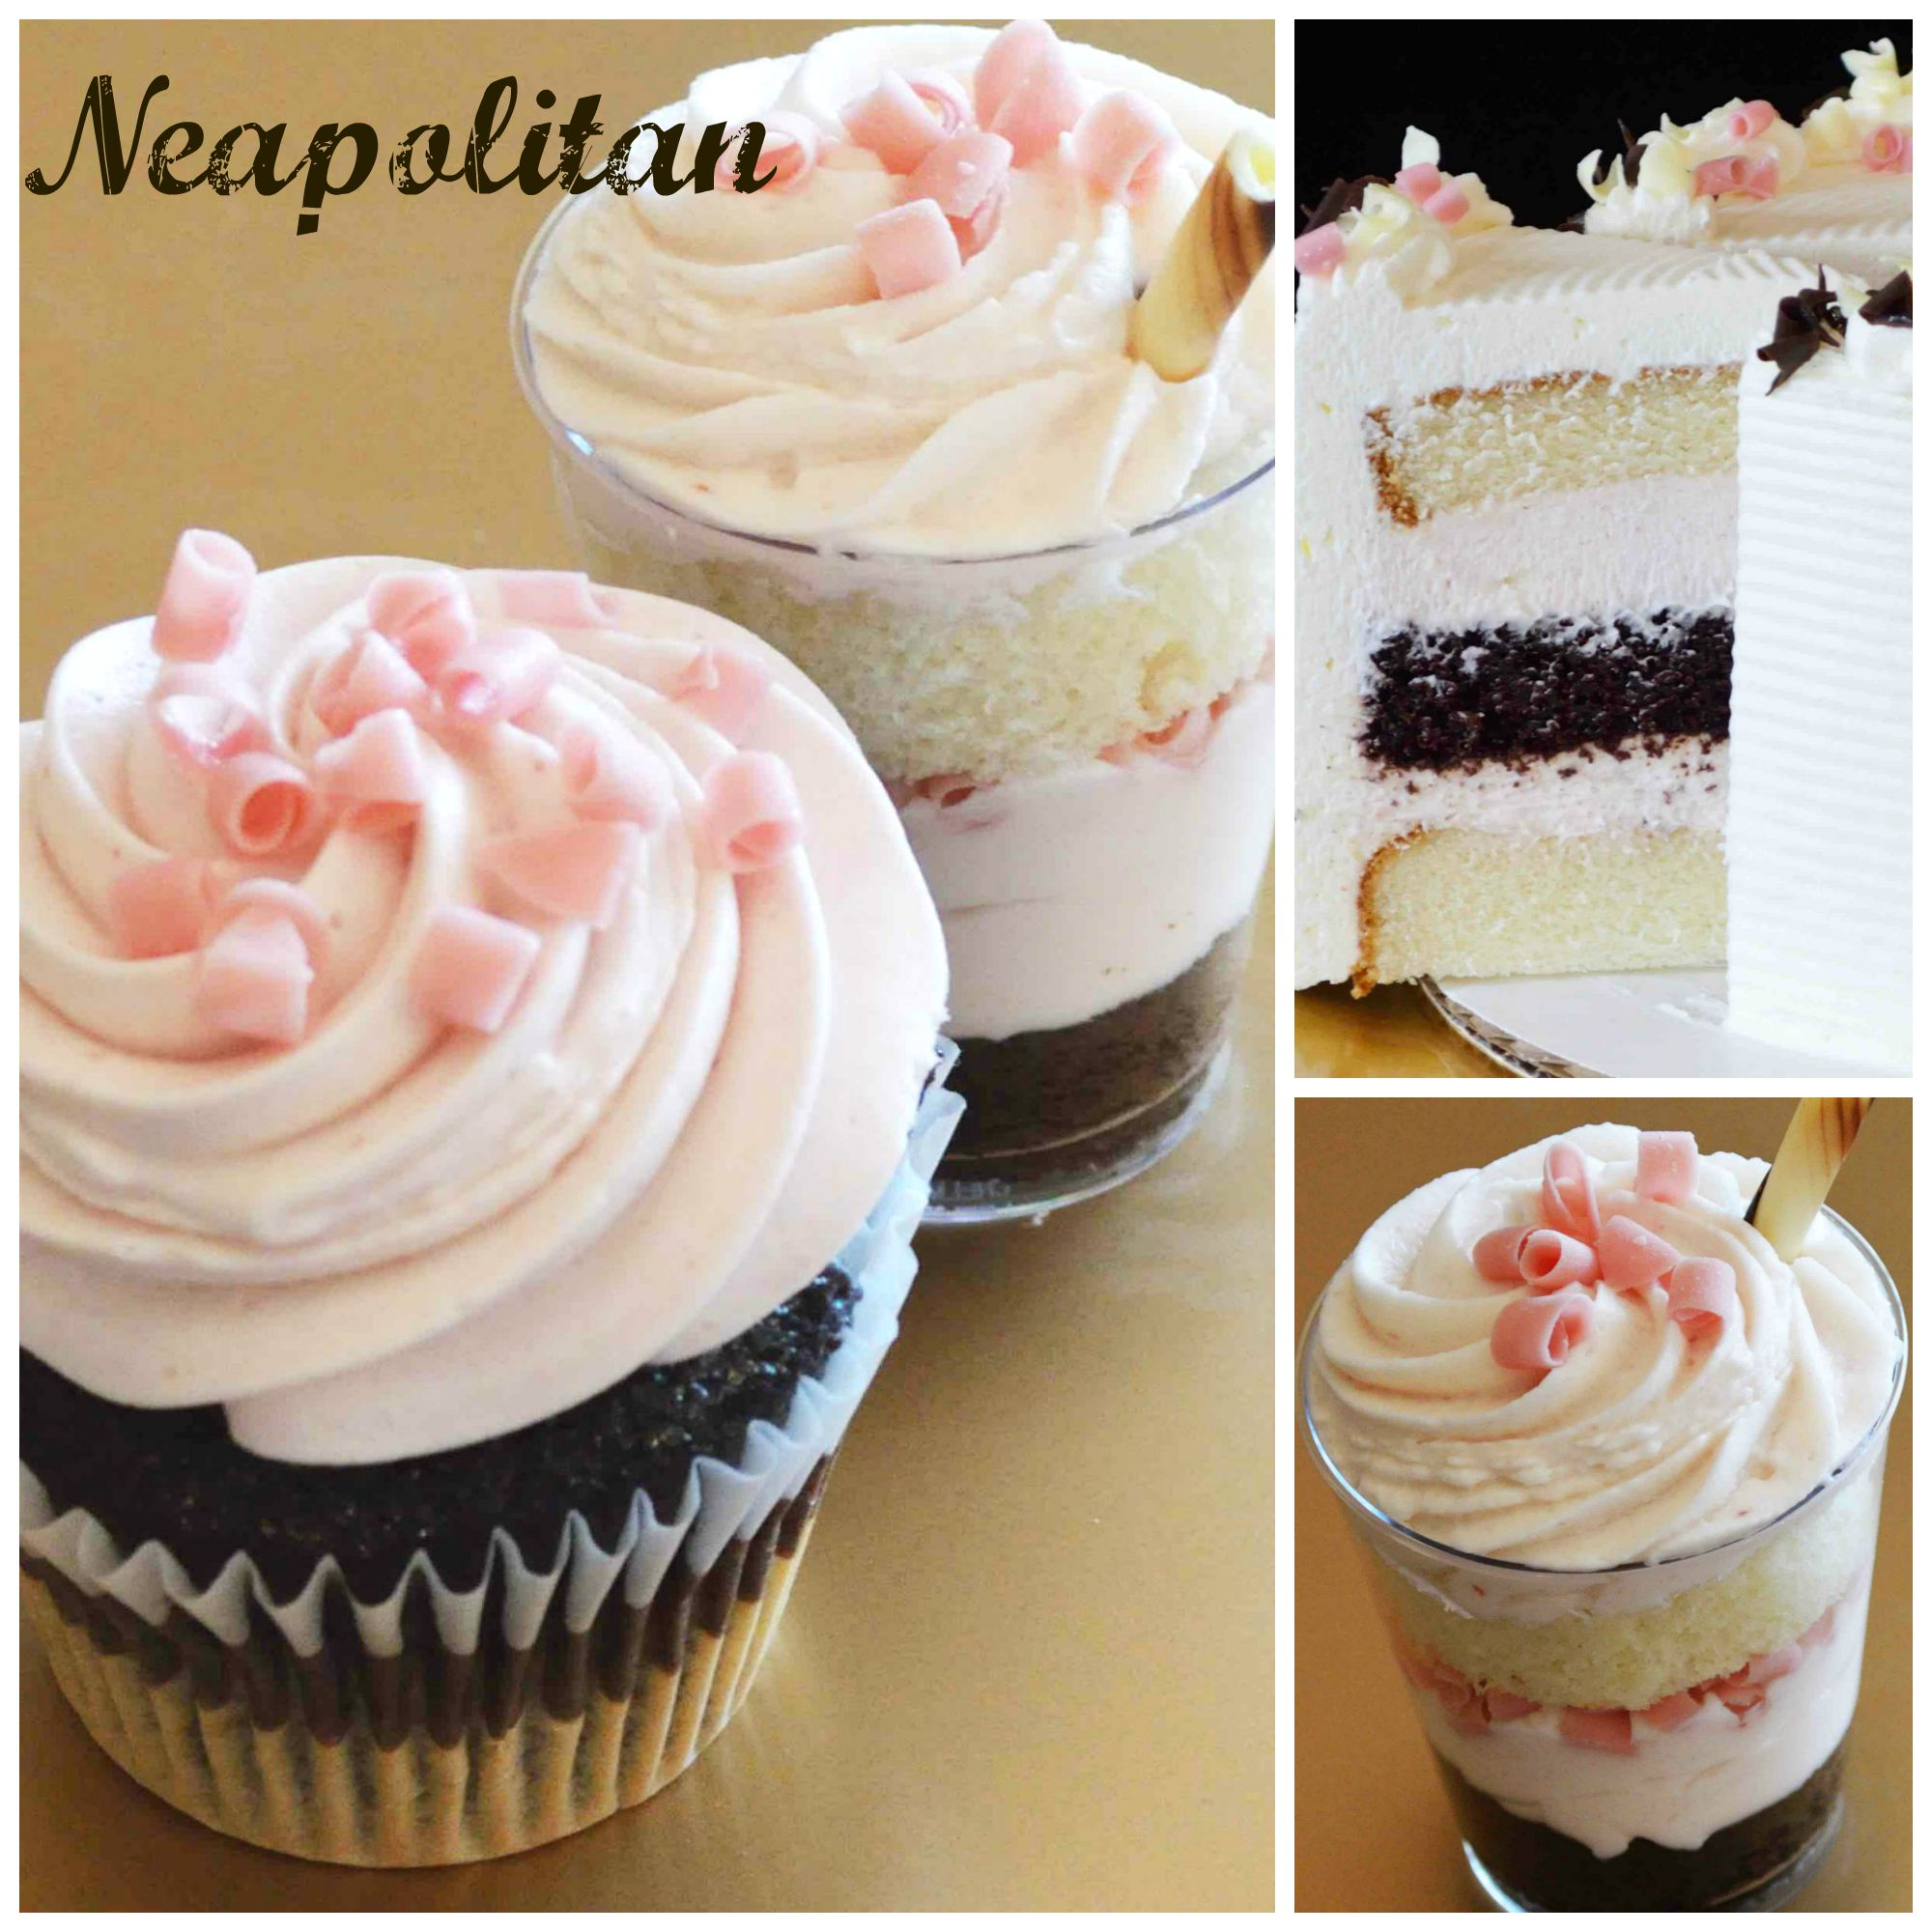 neapolitan collage